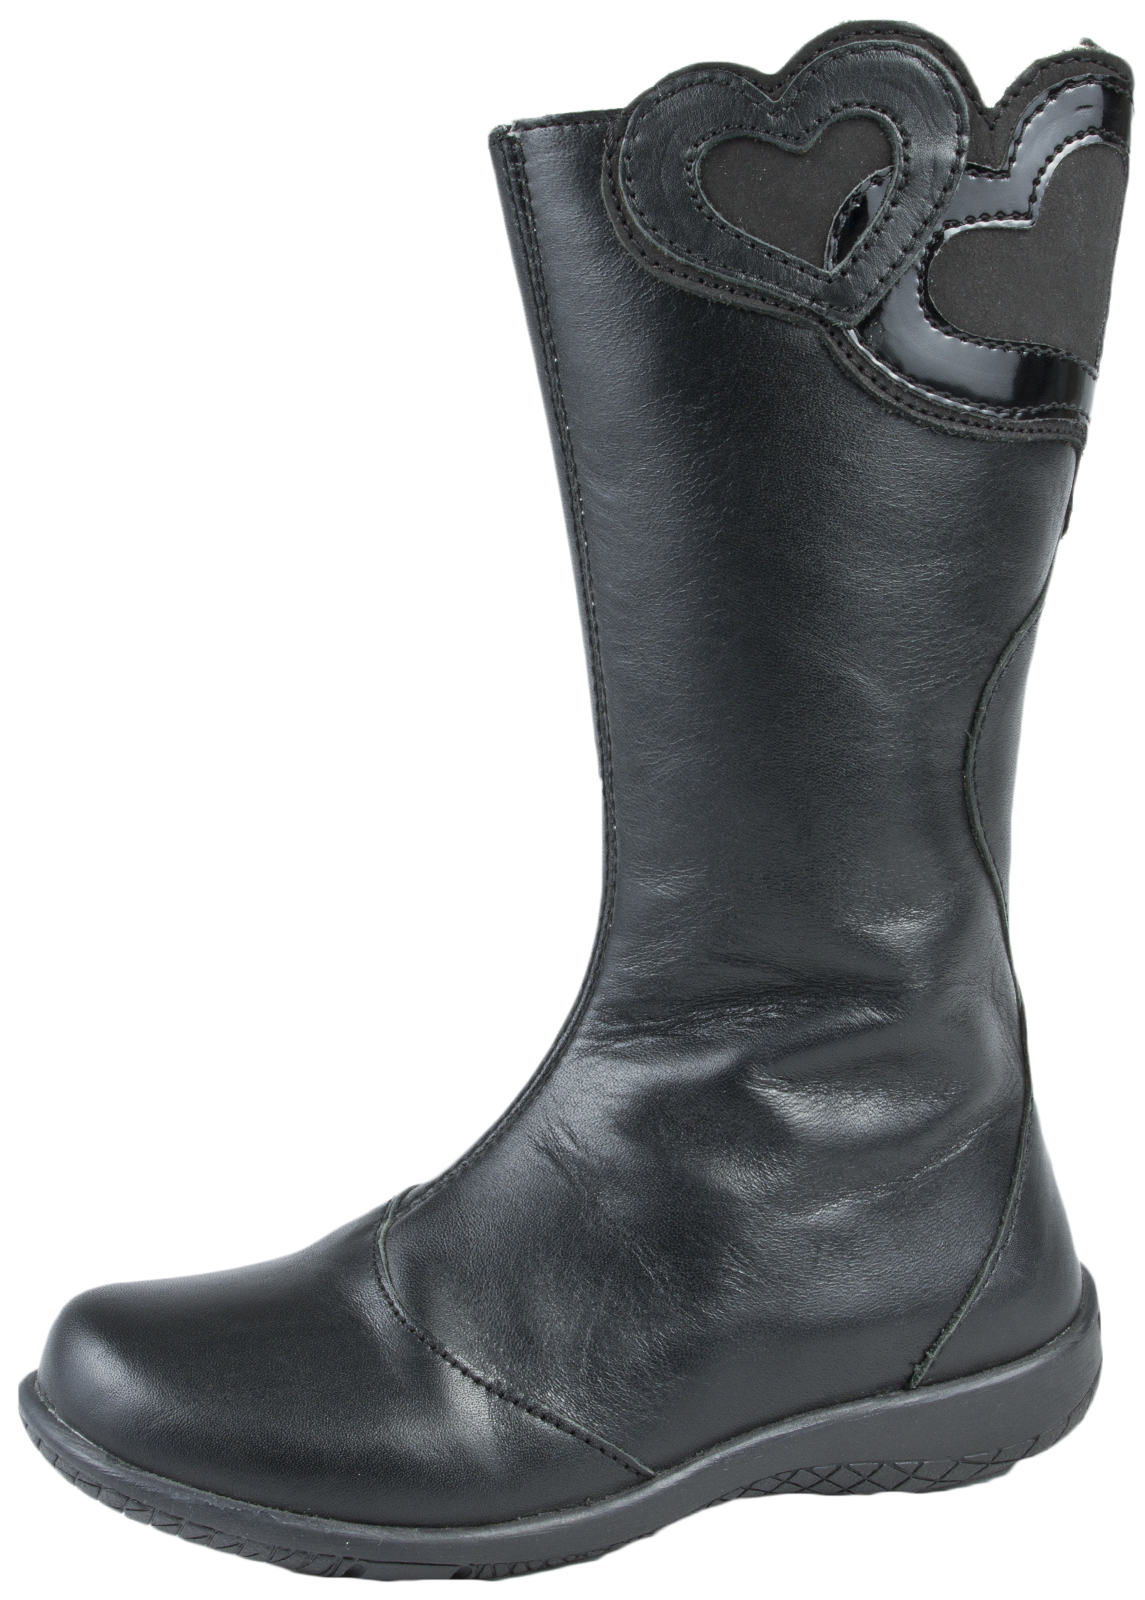 Riding boots feature an easy-to-wear flat heel that makes them a style essential perfect for many occasions. Smooth or rugged, simple or embellished, you'll easily match any casual look with brown riding boots or black riding boots for un-bridled style sense. Shop Women's Riding Boots.